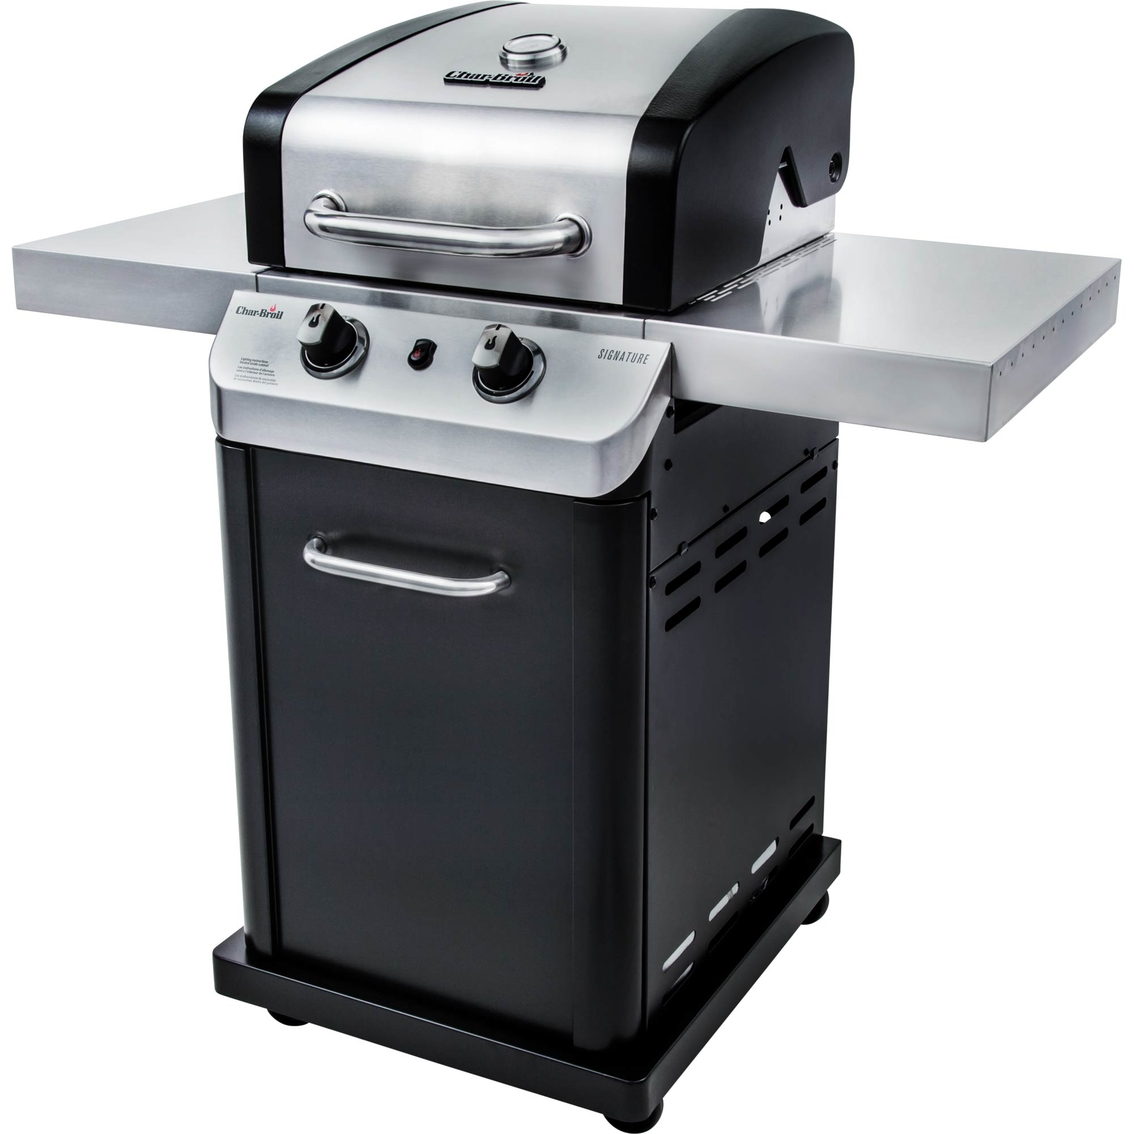 Broil Gasgrill Char Broil Signature 2 Burner Lp Gas Grill Gas Grills More